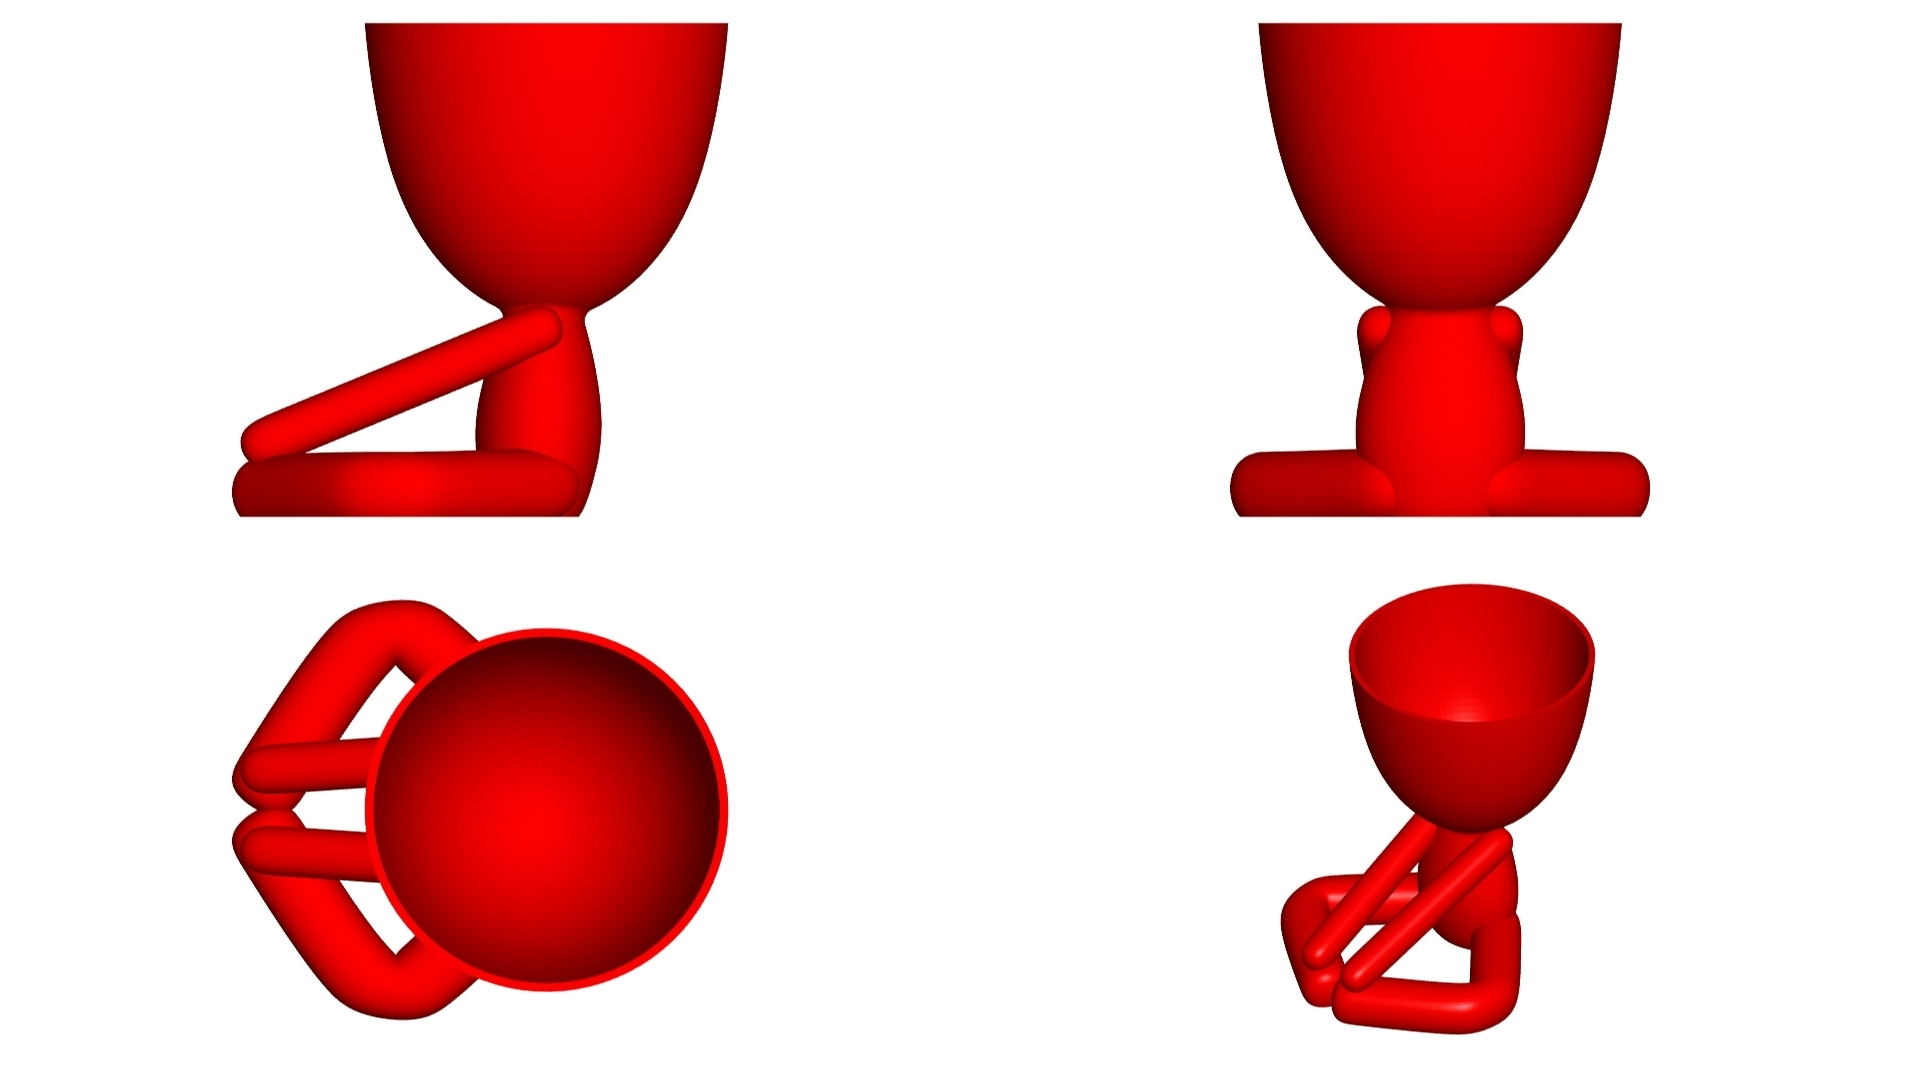 Vaso_12_Rojo_2.jpg Download free STL file YOGA ESTIRANDO JARRÓN MACETA ROBERT 12 -  YOGA STRETCHING VASE FLOWERPOT ROBERT 12 • Template to 3D print, PRODUSTL56